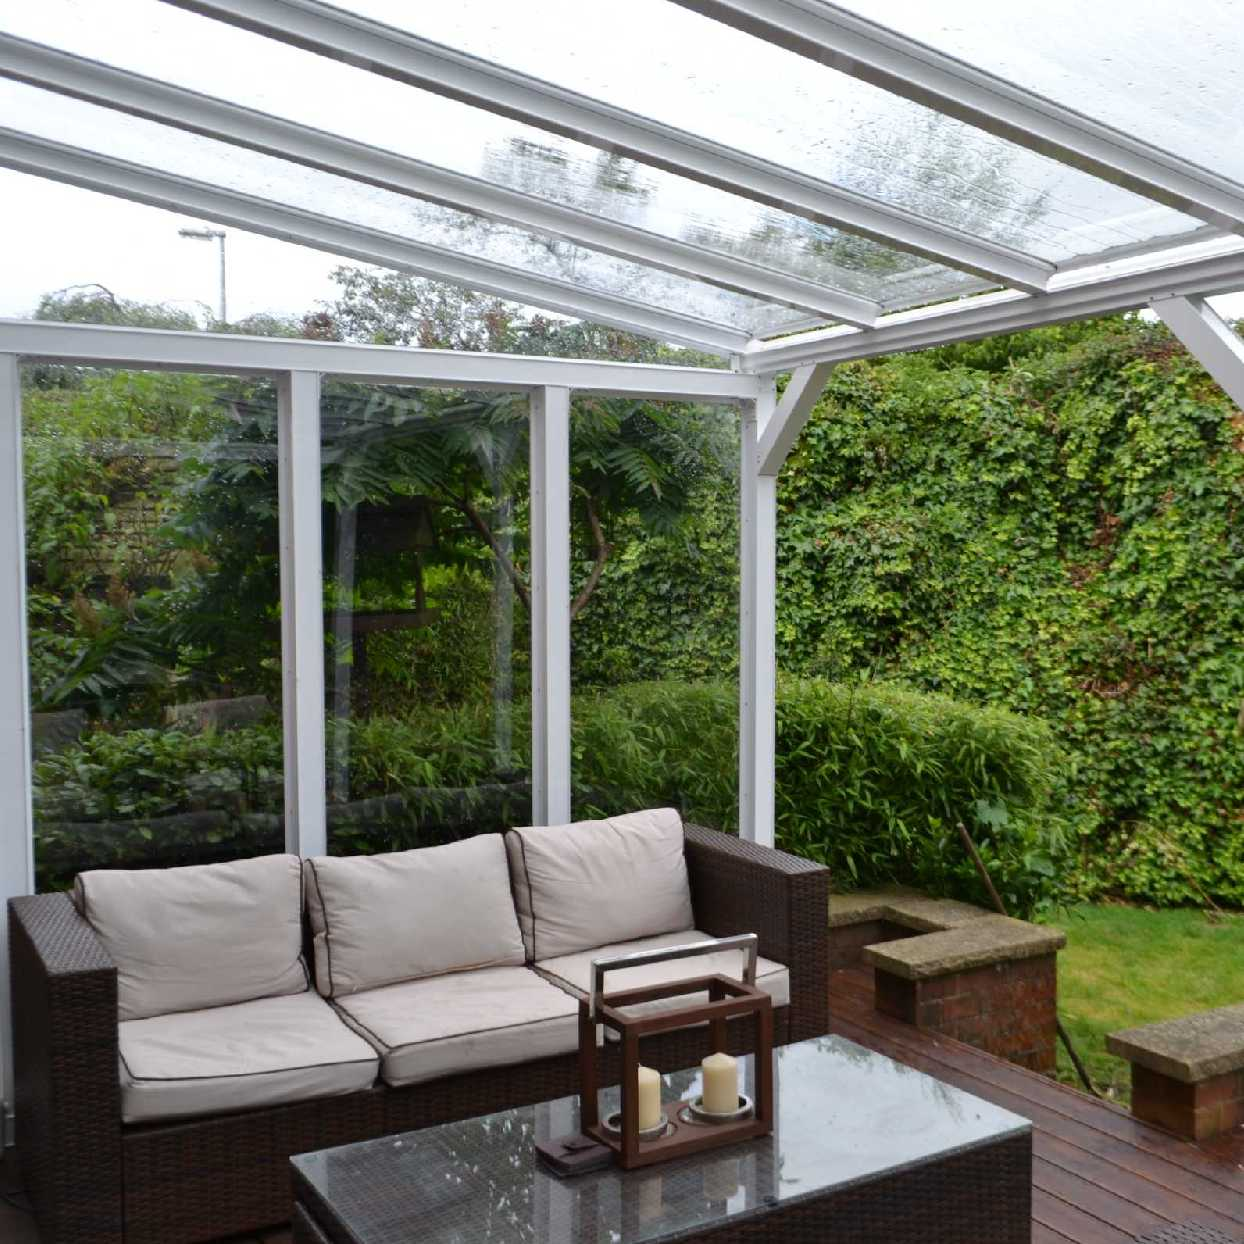 Omega Smart Lean-To Canopy with 6mm Glass Clear Plate Polycarbonate Glazing - 6.3m (W) x 1.5m (P), (4) Supporting Posts